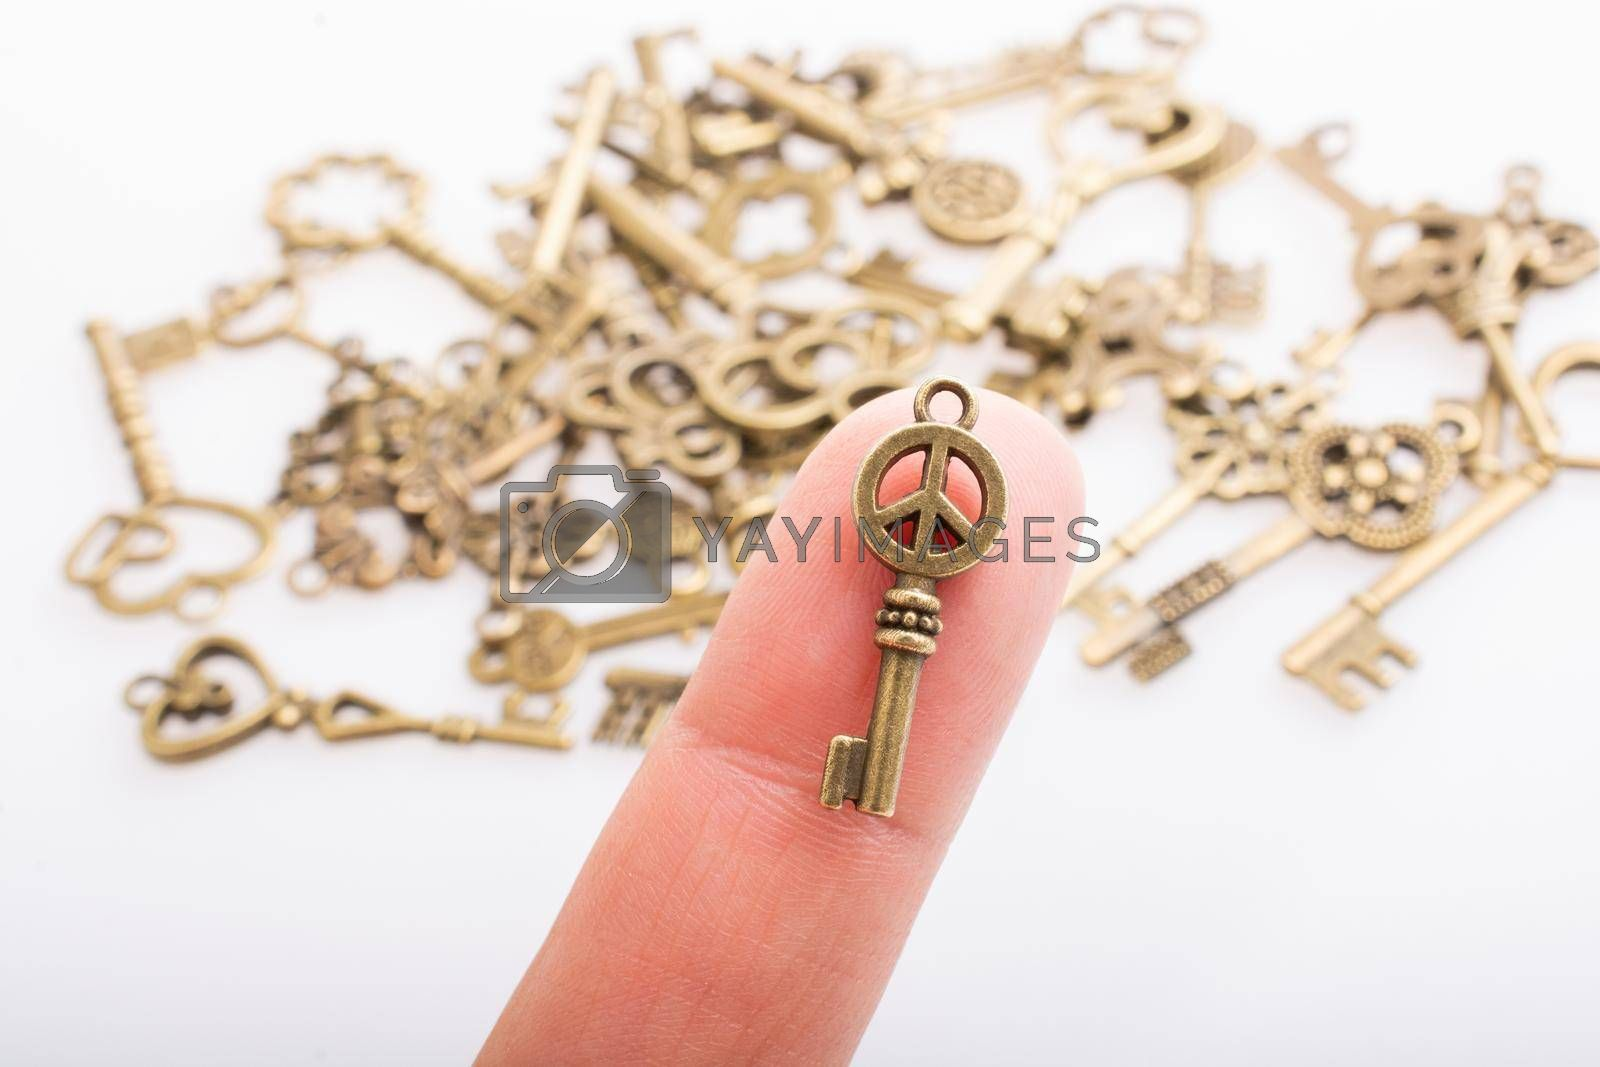 Peace symbol key in hand over and retro style metal keys